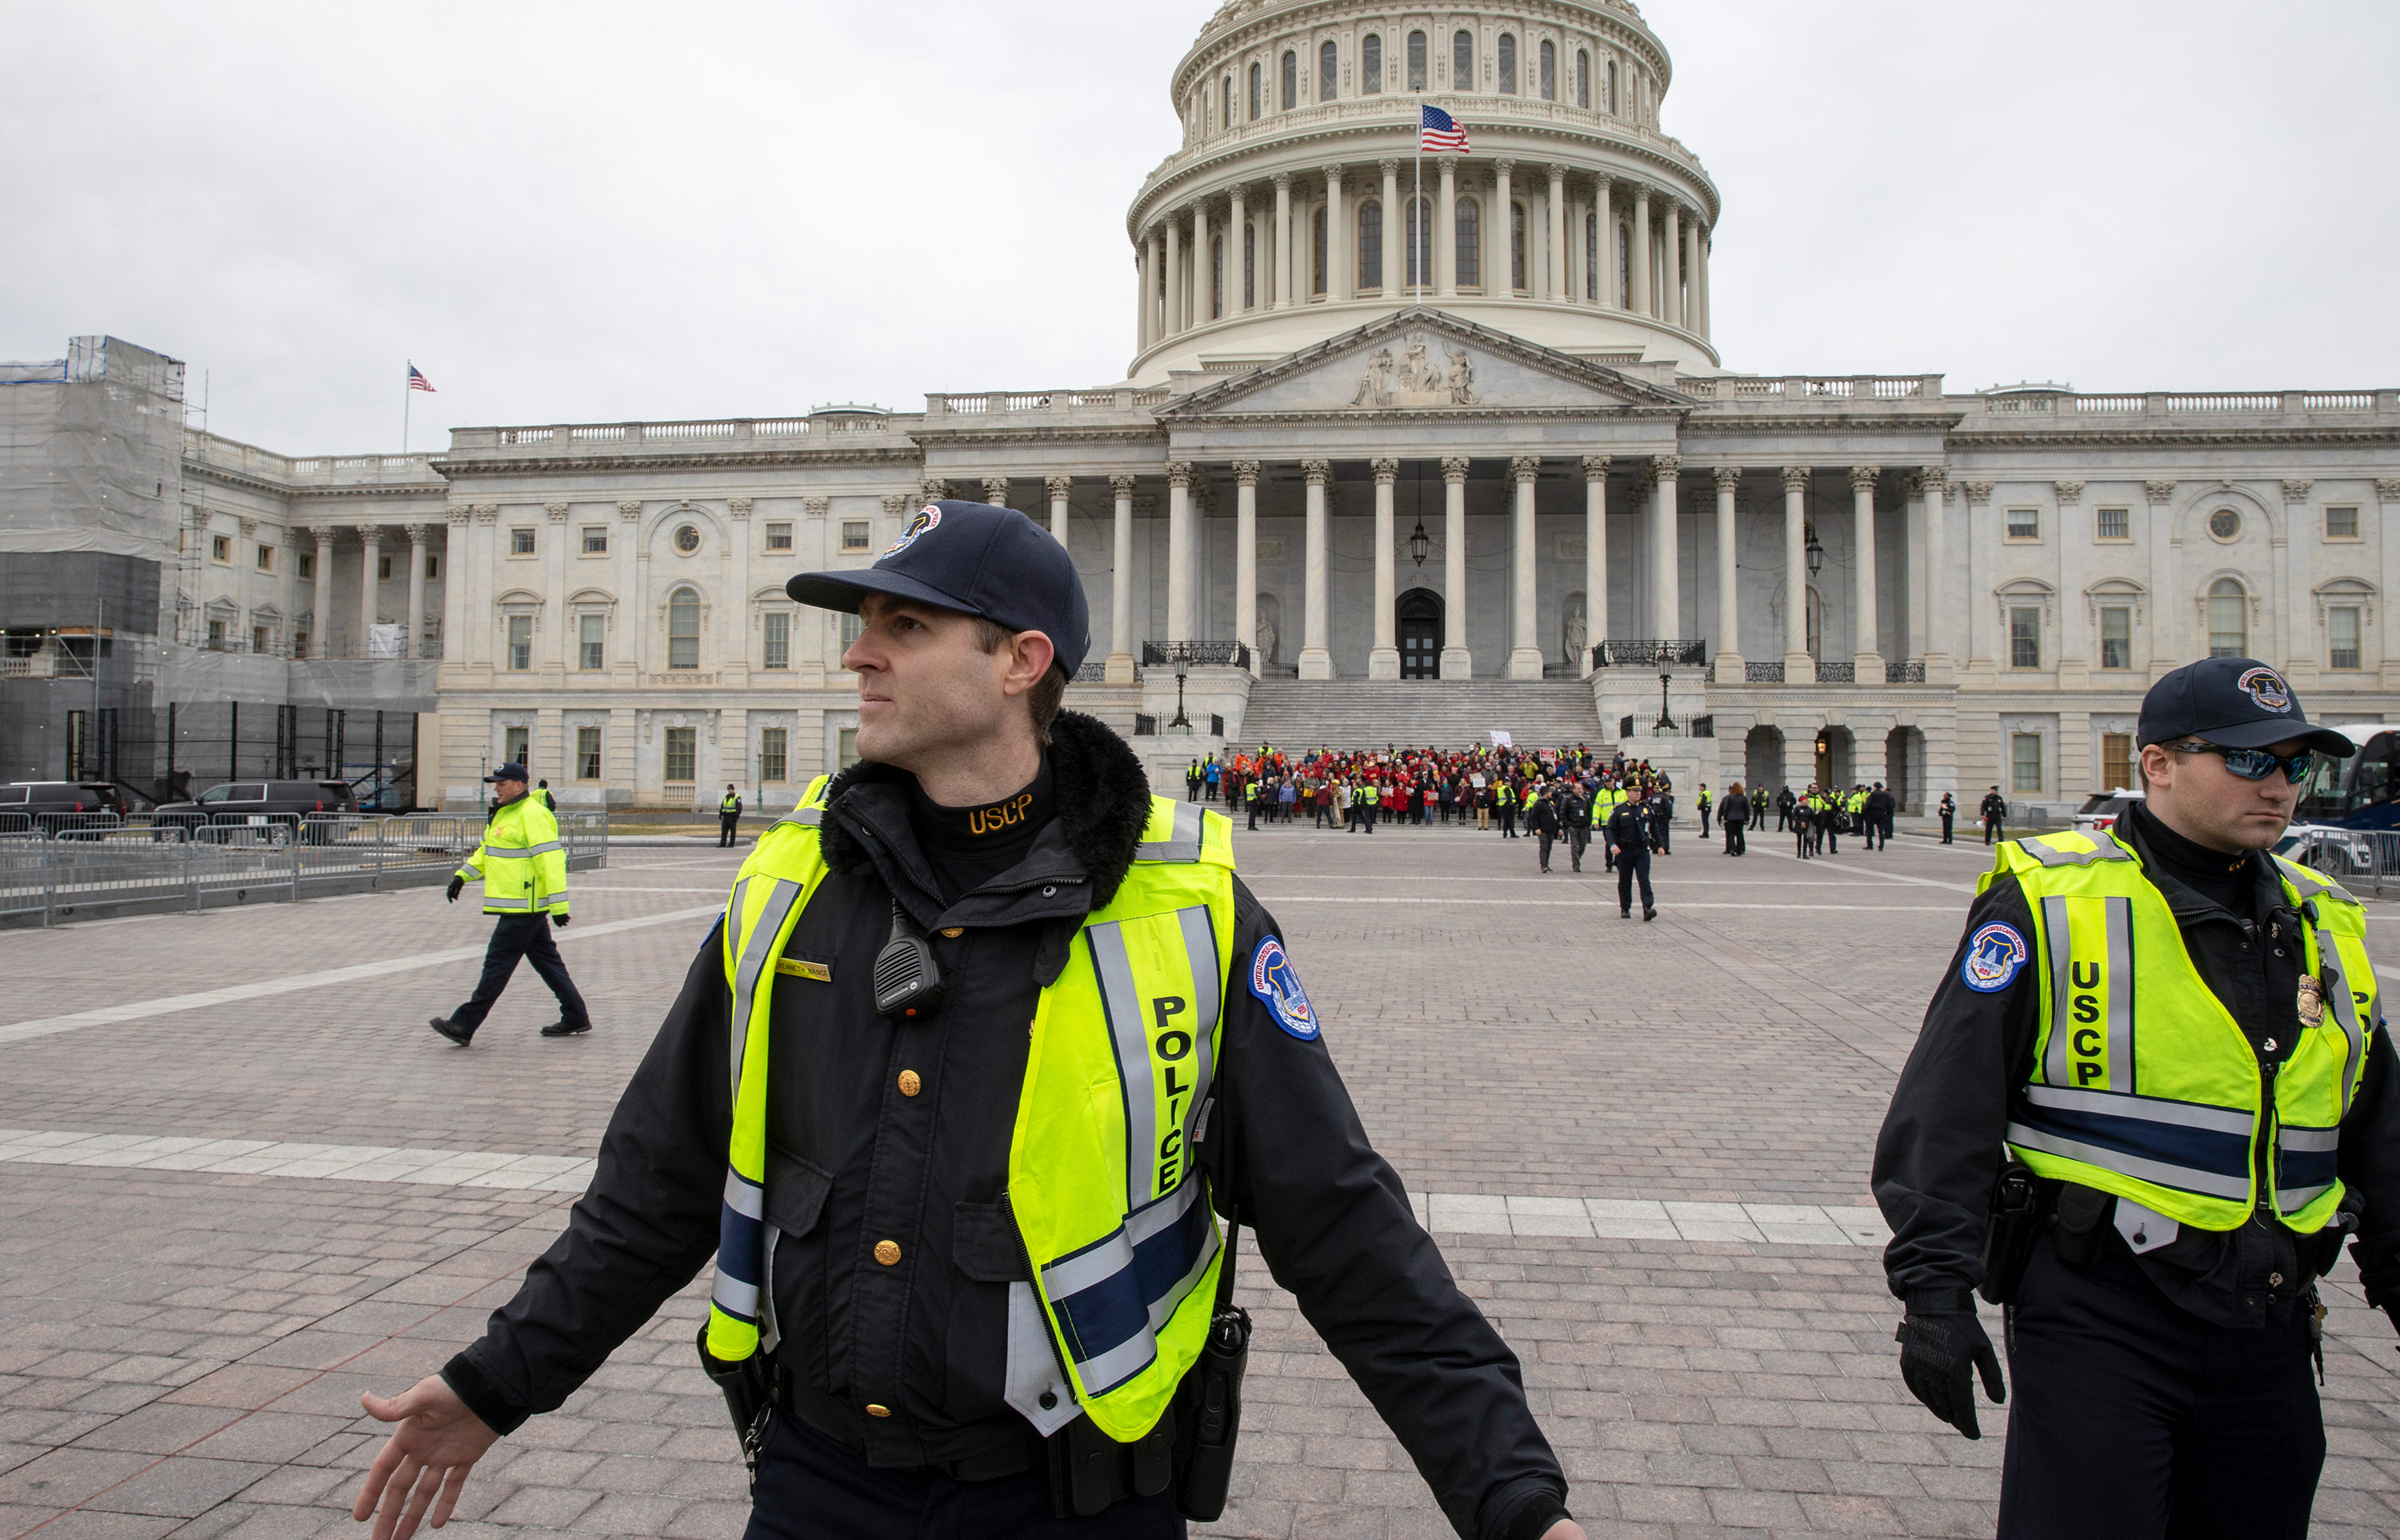 Congressional Gold Medal vote for January 6 police officers overwhelmingly passes House as 21 Republicans vote no